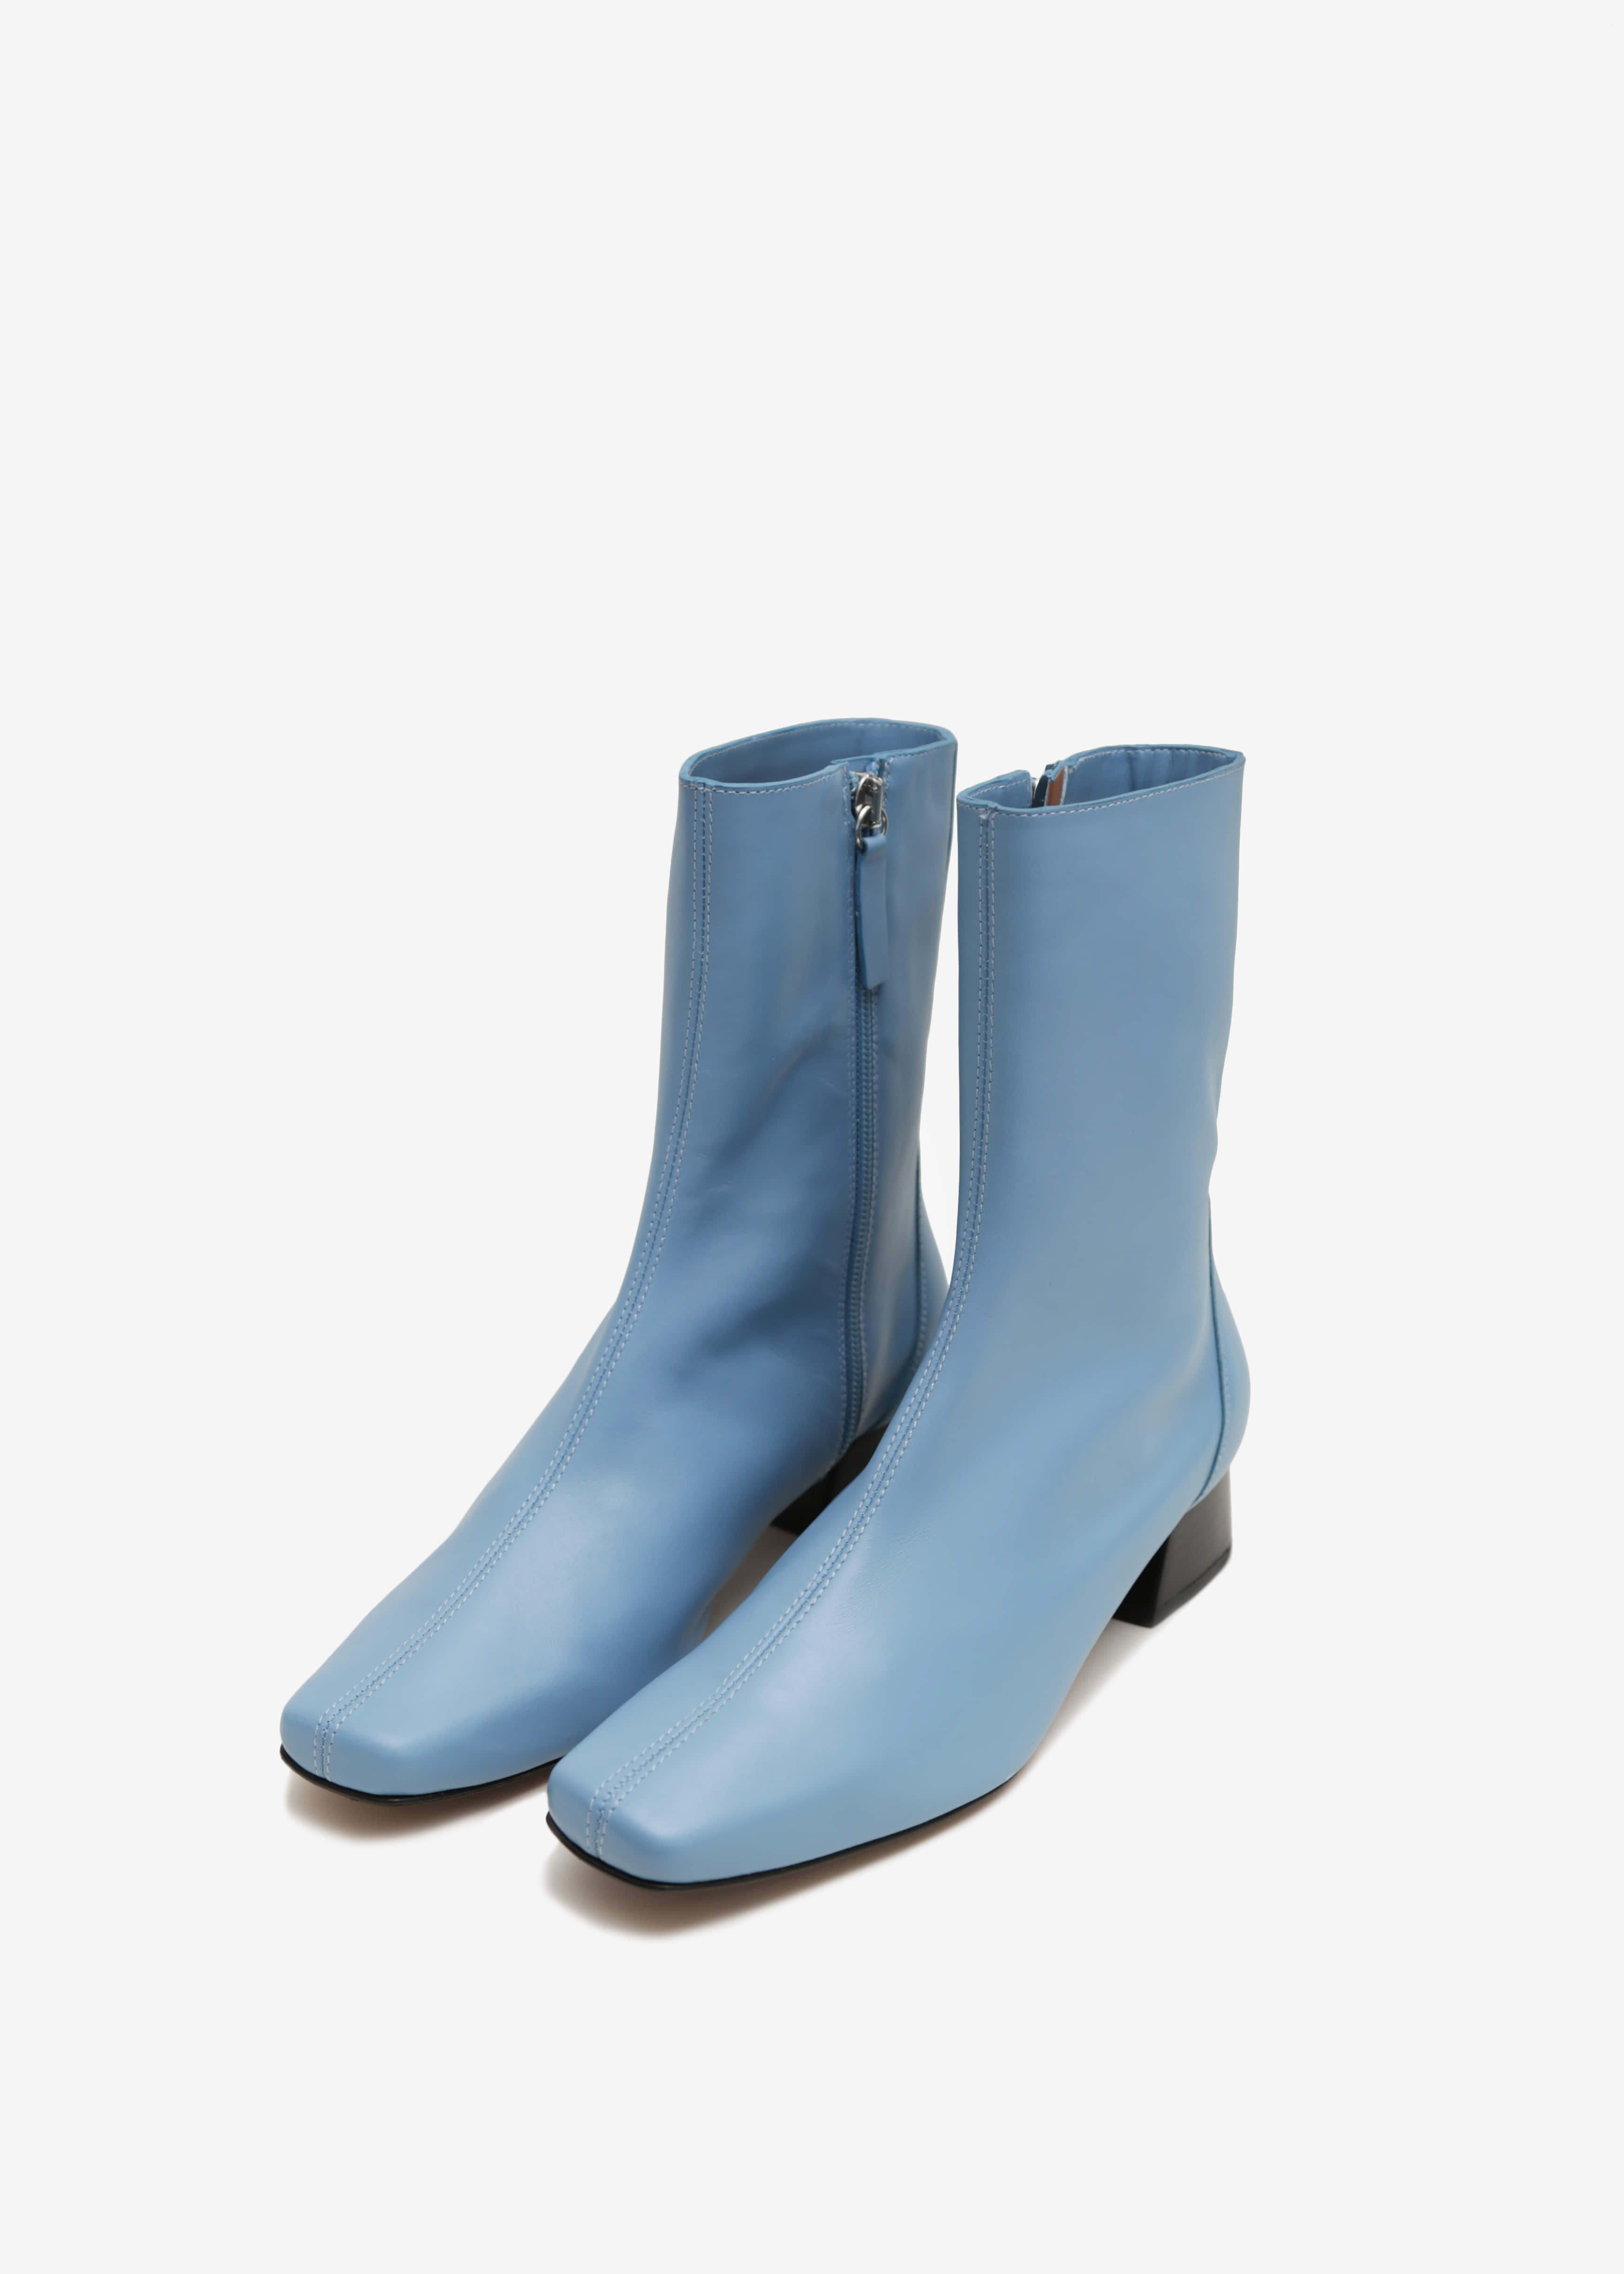 MARION BOOTS SKY